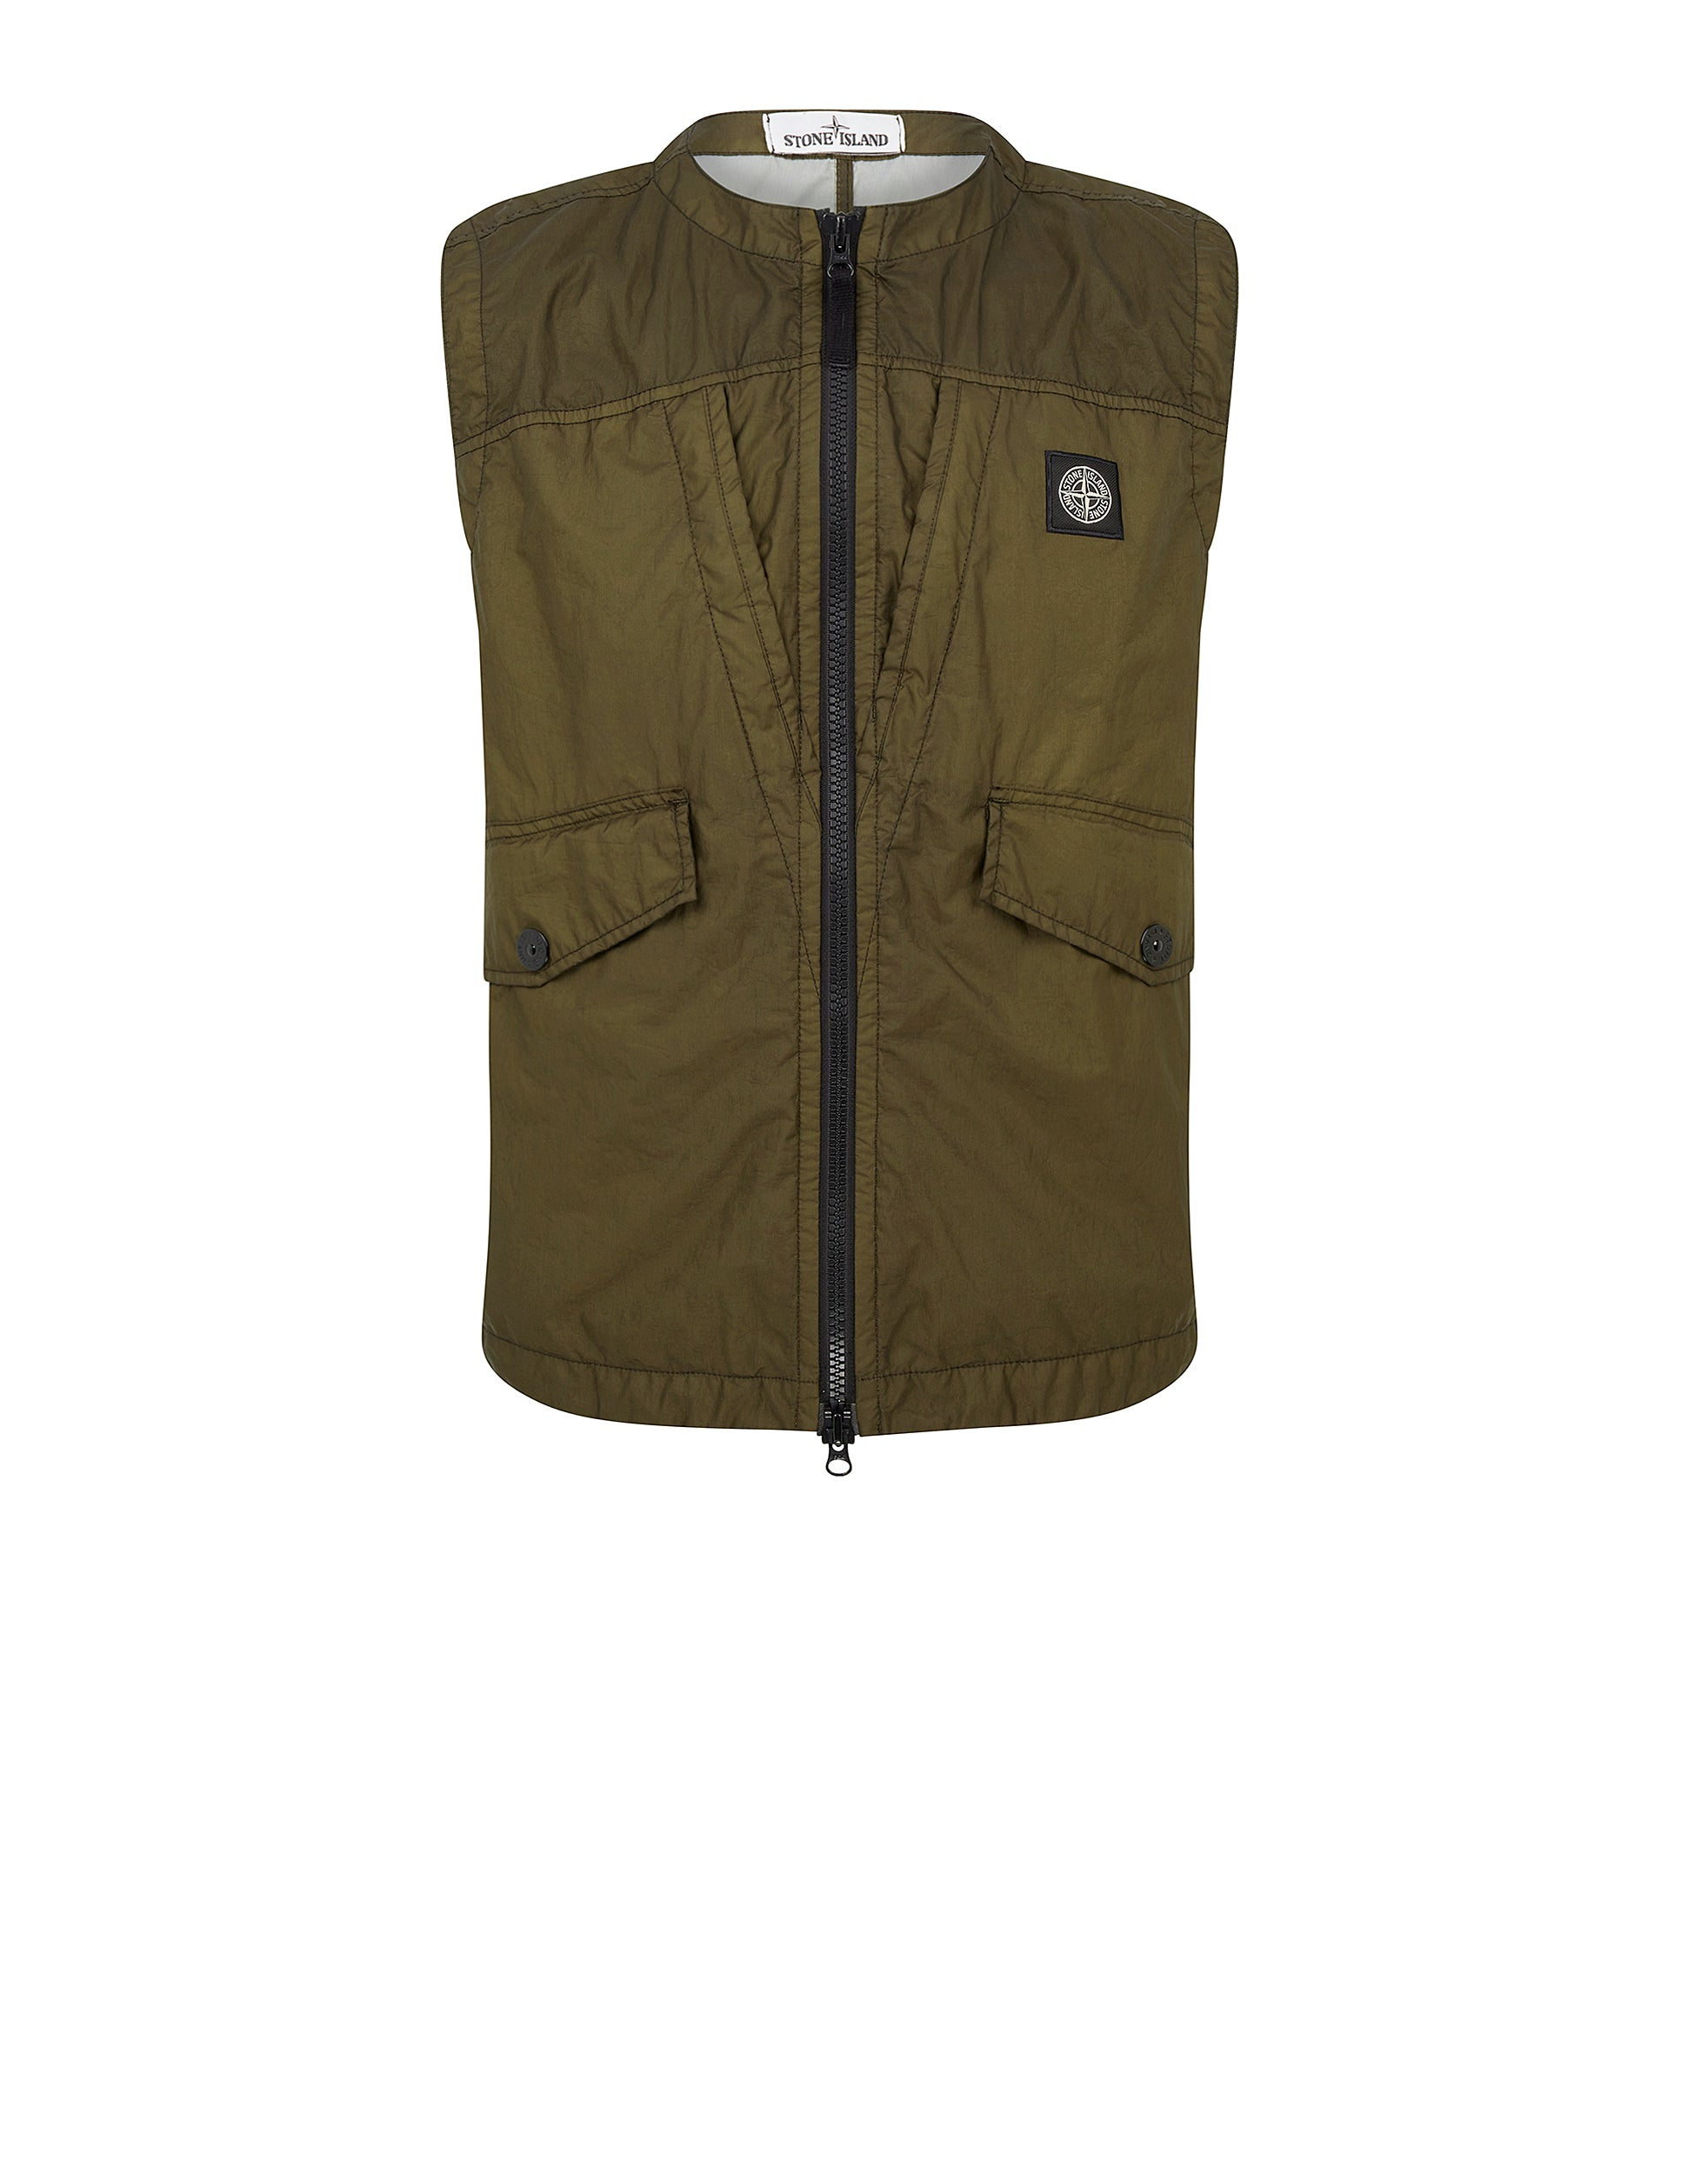 Latest Collections Cheap Price Membrana 3L TC Gilet Stone Island Sale Cheap Price Clearance Low Shipping Fee Free Shipping Cost Free Shipping Shop For 5zvjyy